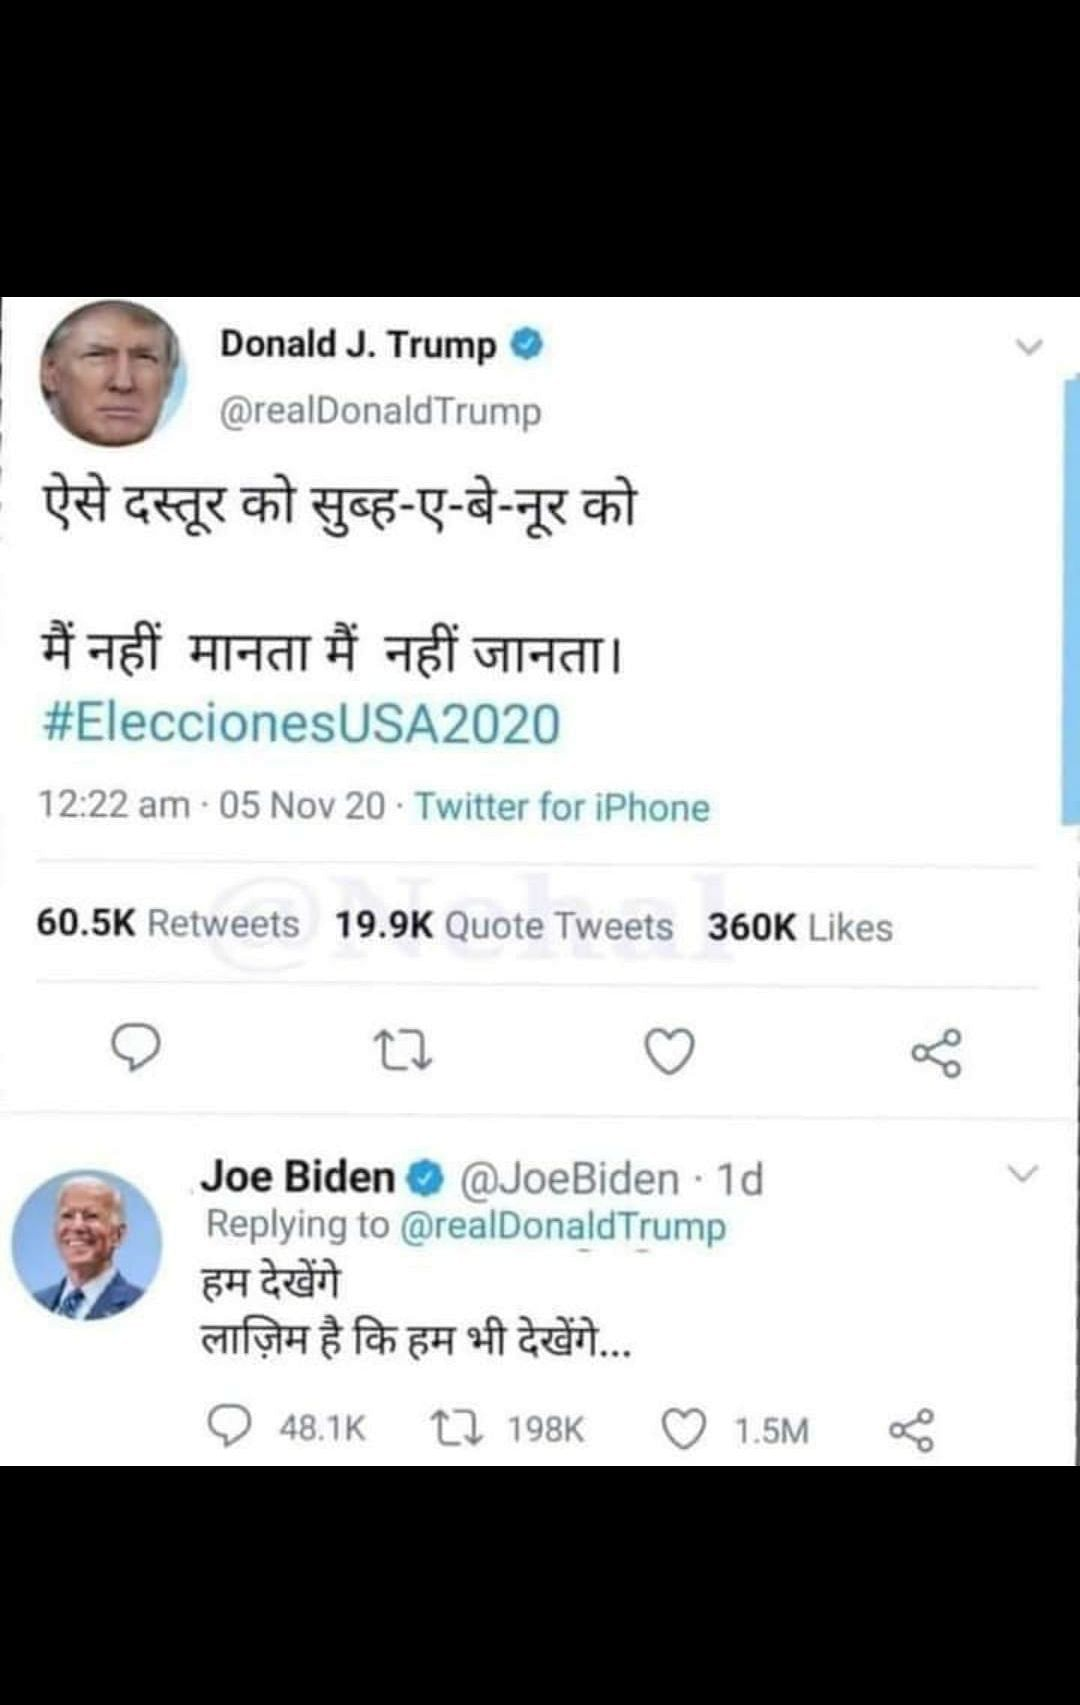 """US Election 2020: """"Twitter is out of control!"""" says Trump; netizens resort to humour, memes"""